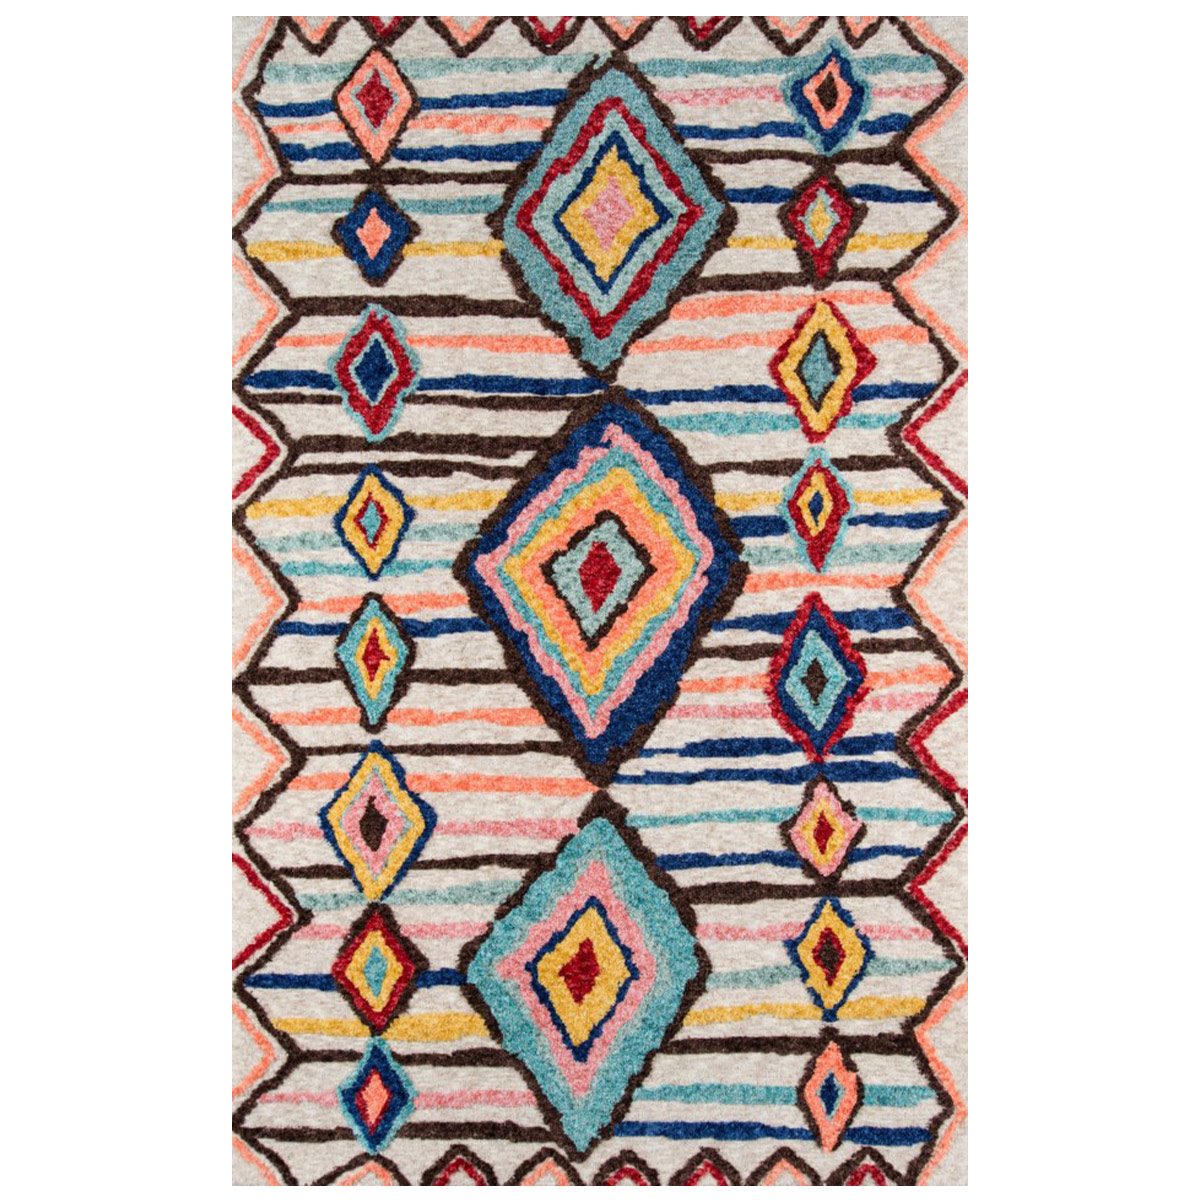 Arturo Colorful Rug - 8 x 10